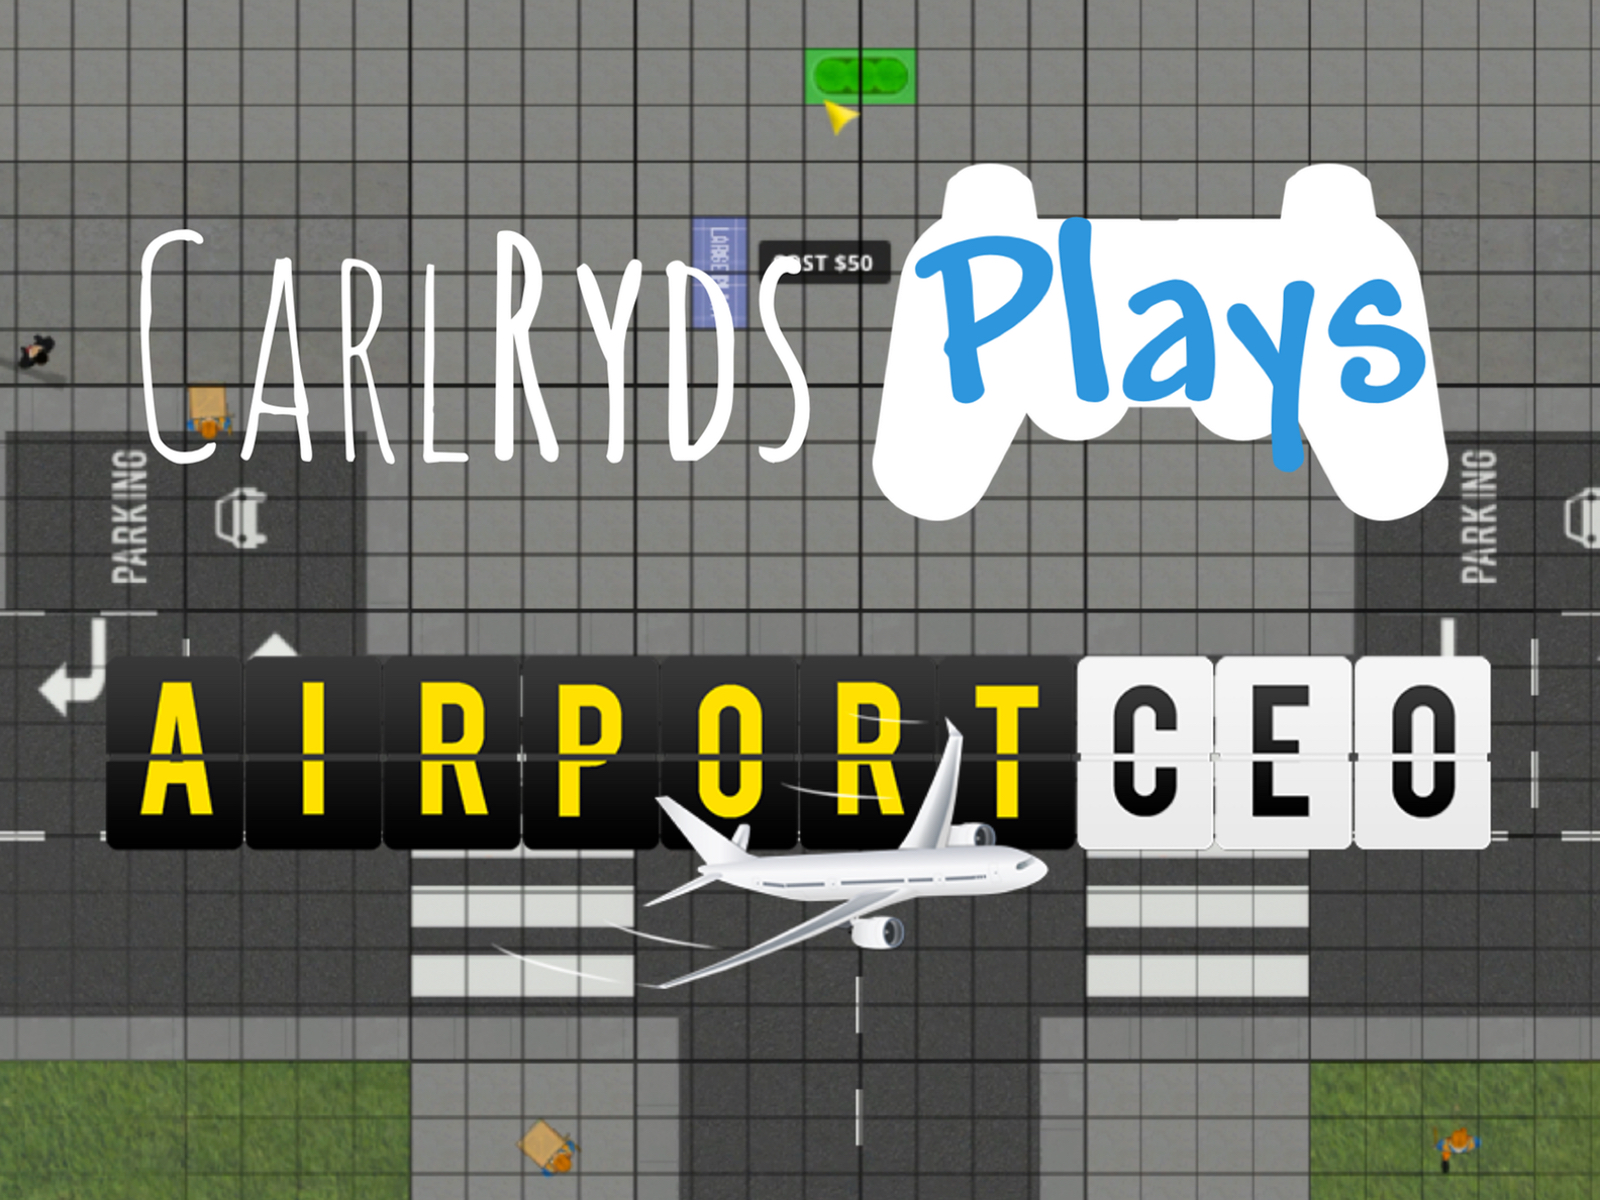 CarlRyds plays Airport CEO